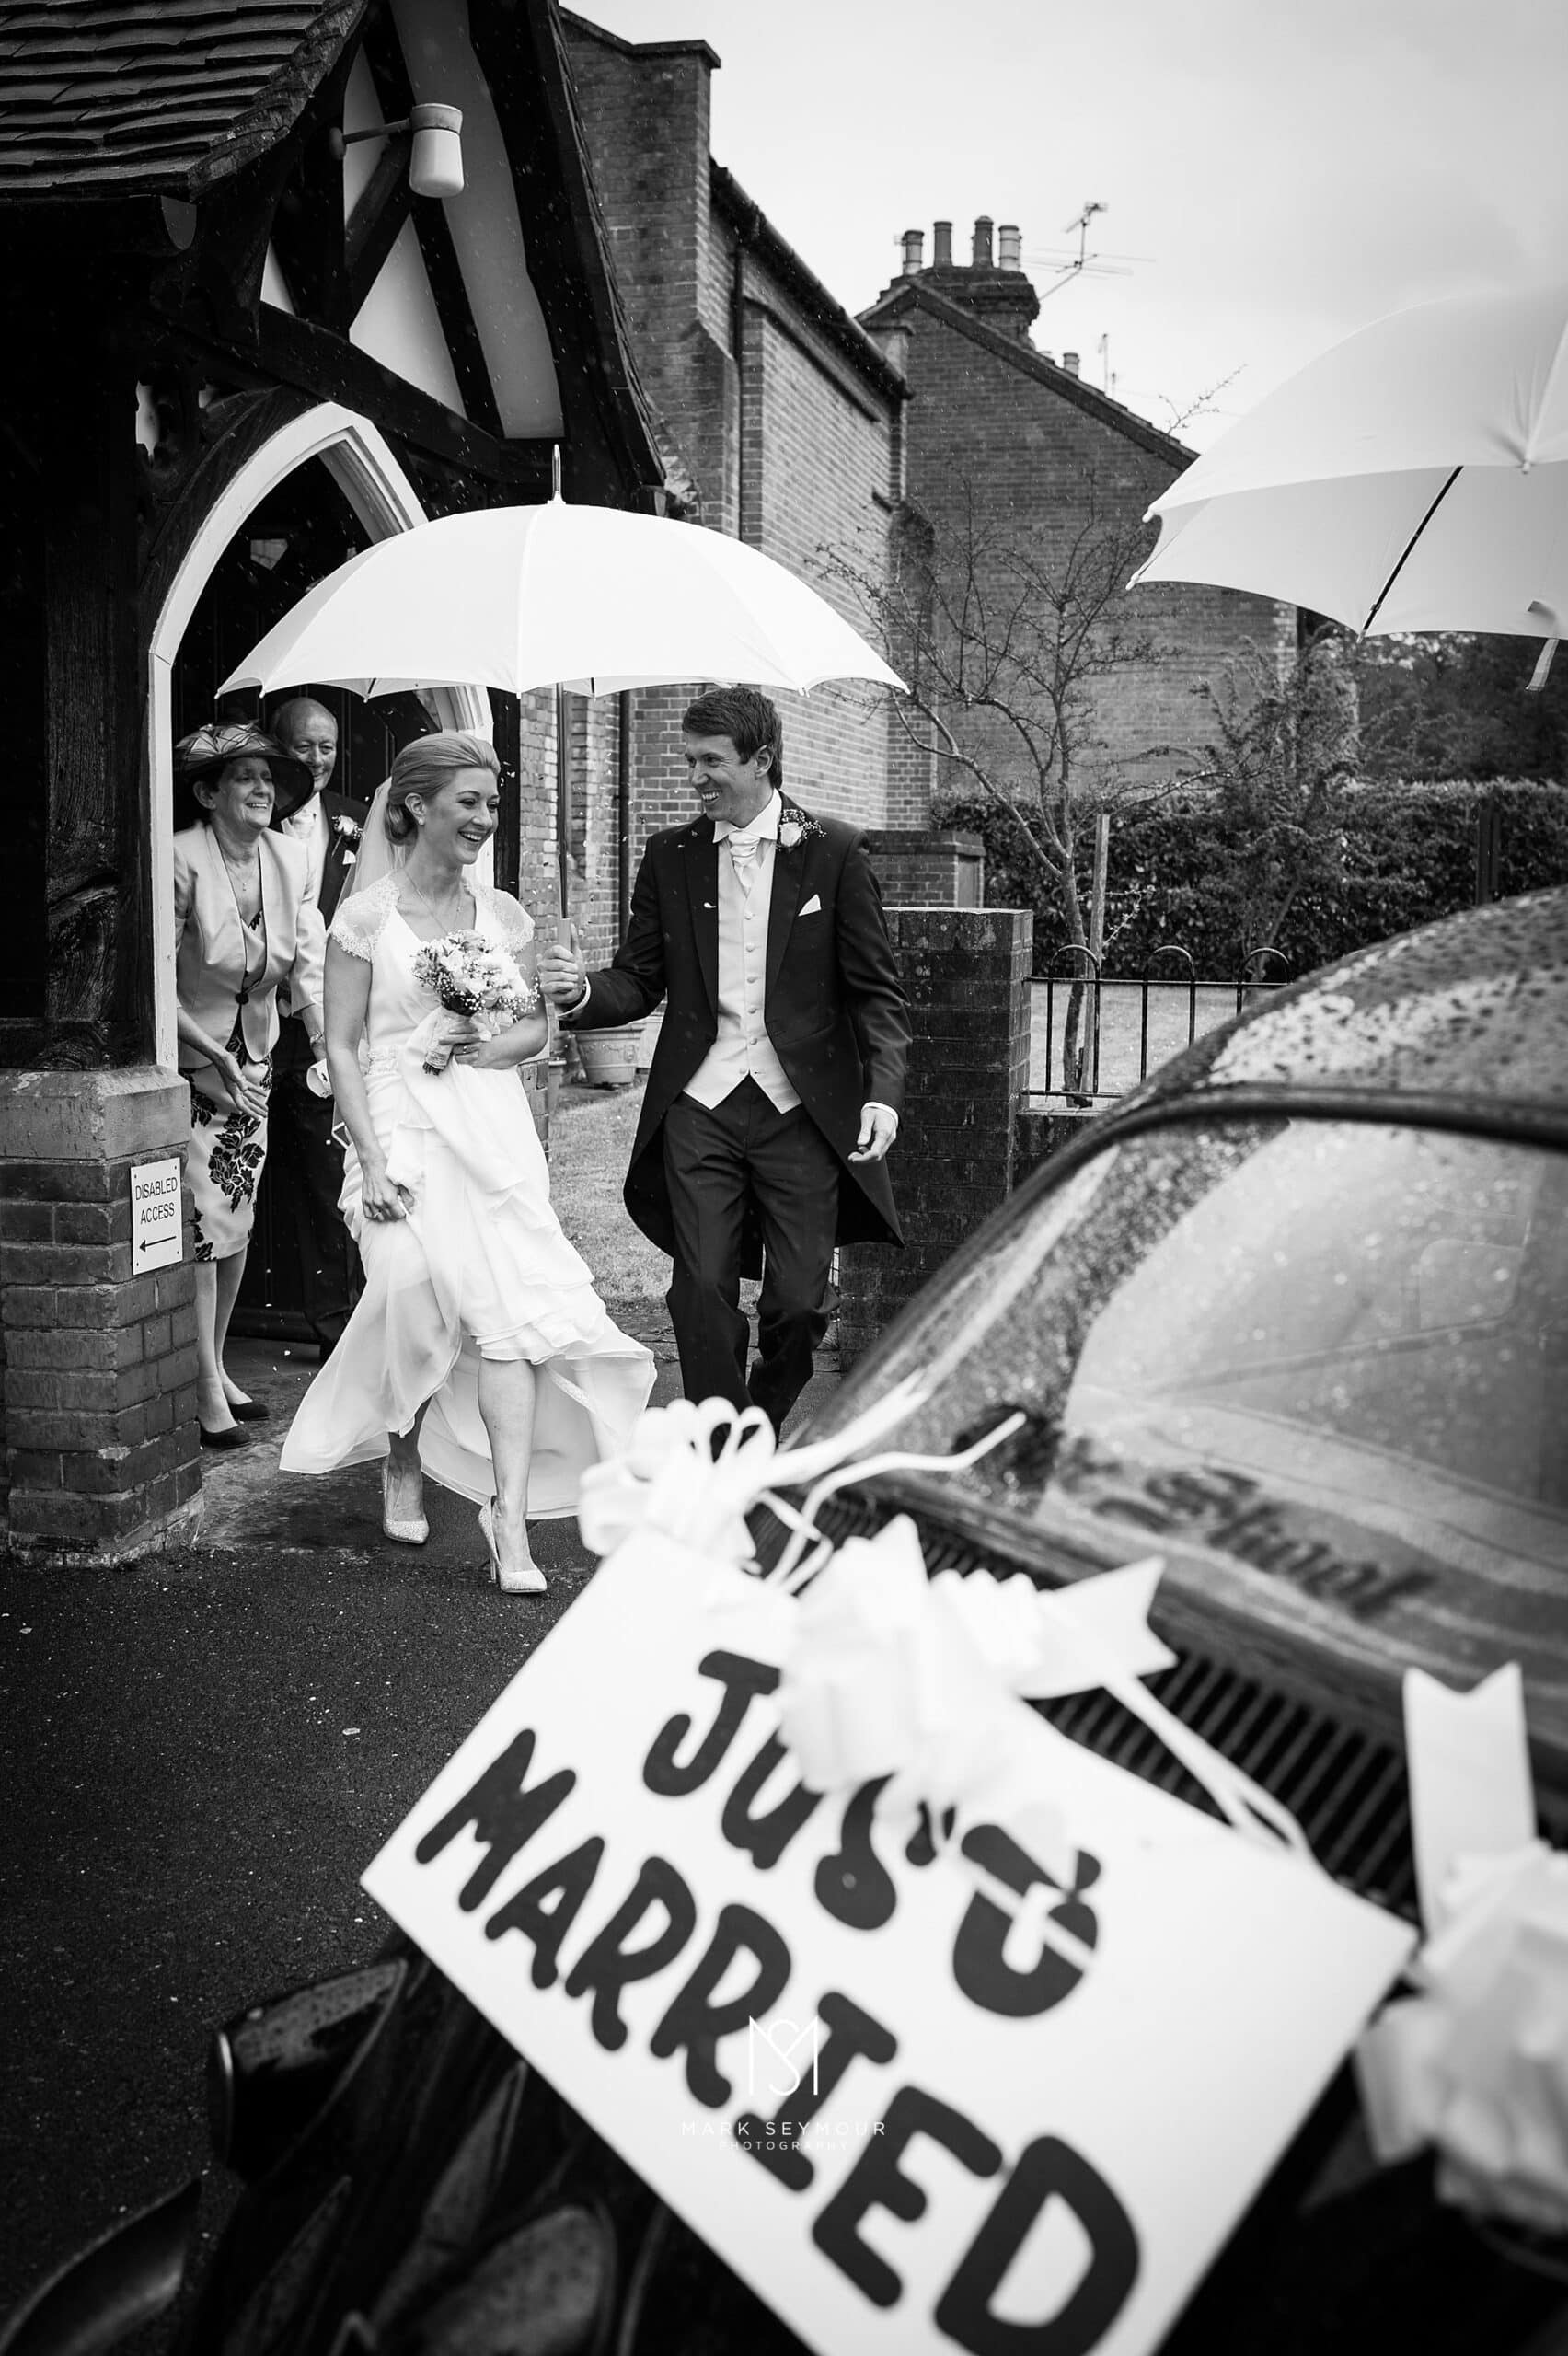 Just Married at the church door